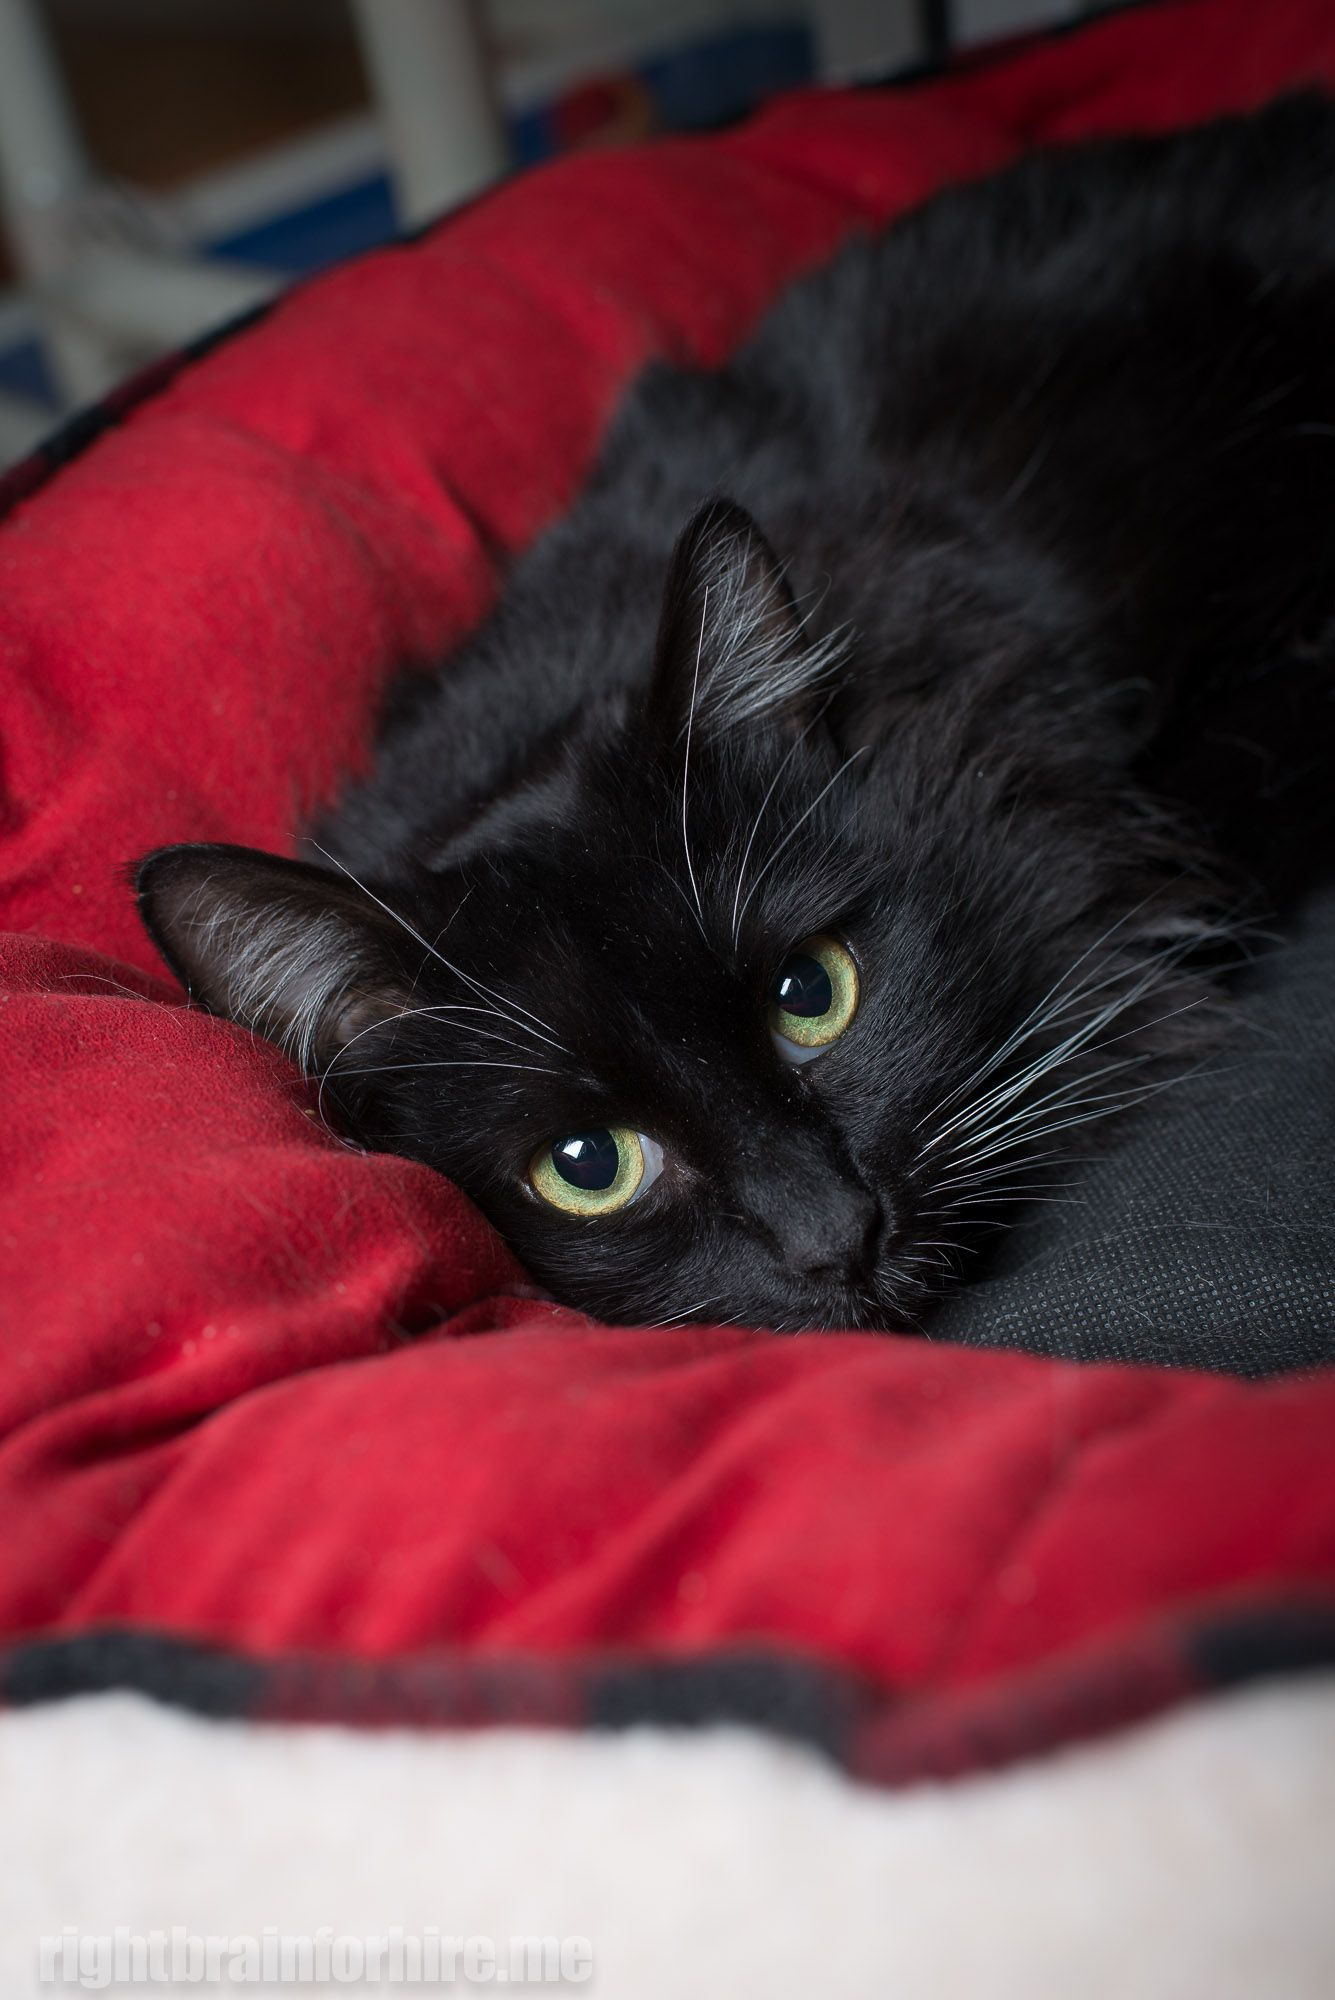 Update Adopted March 2014 Kitty Purry Is A Snuggle Bug With Long Black Fur And White Paws She Is Looking For A Home With Black Cat Aesthetic Cats White Cats